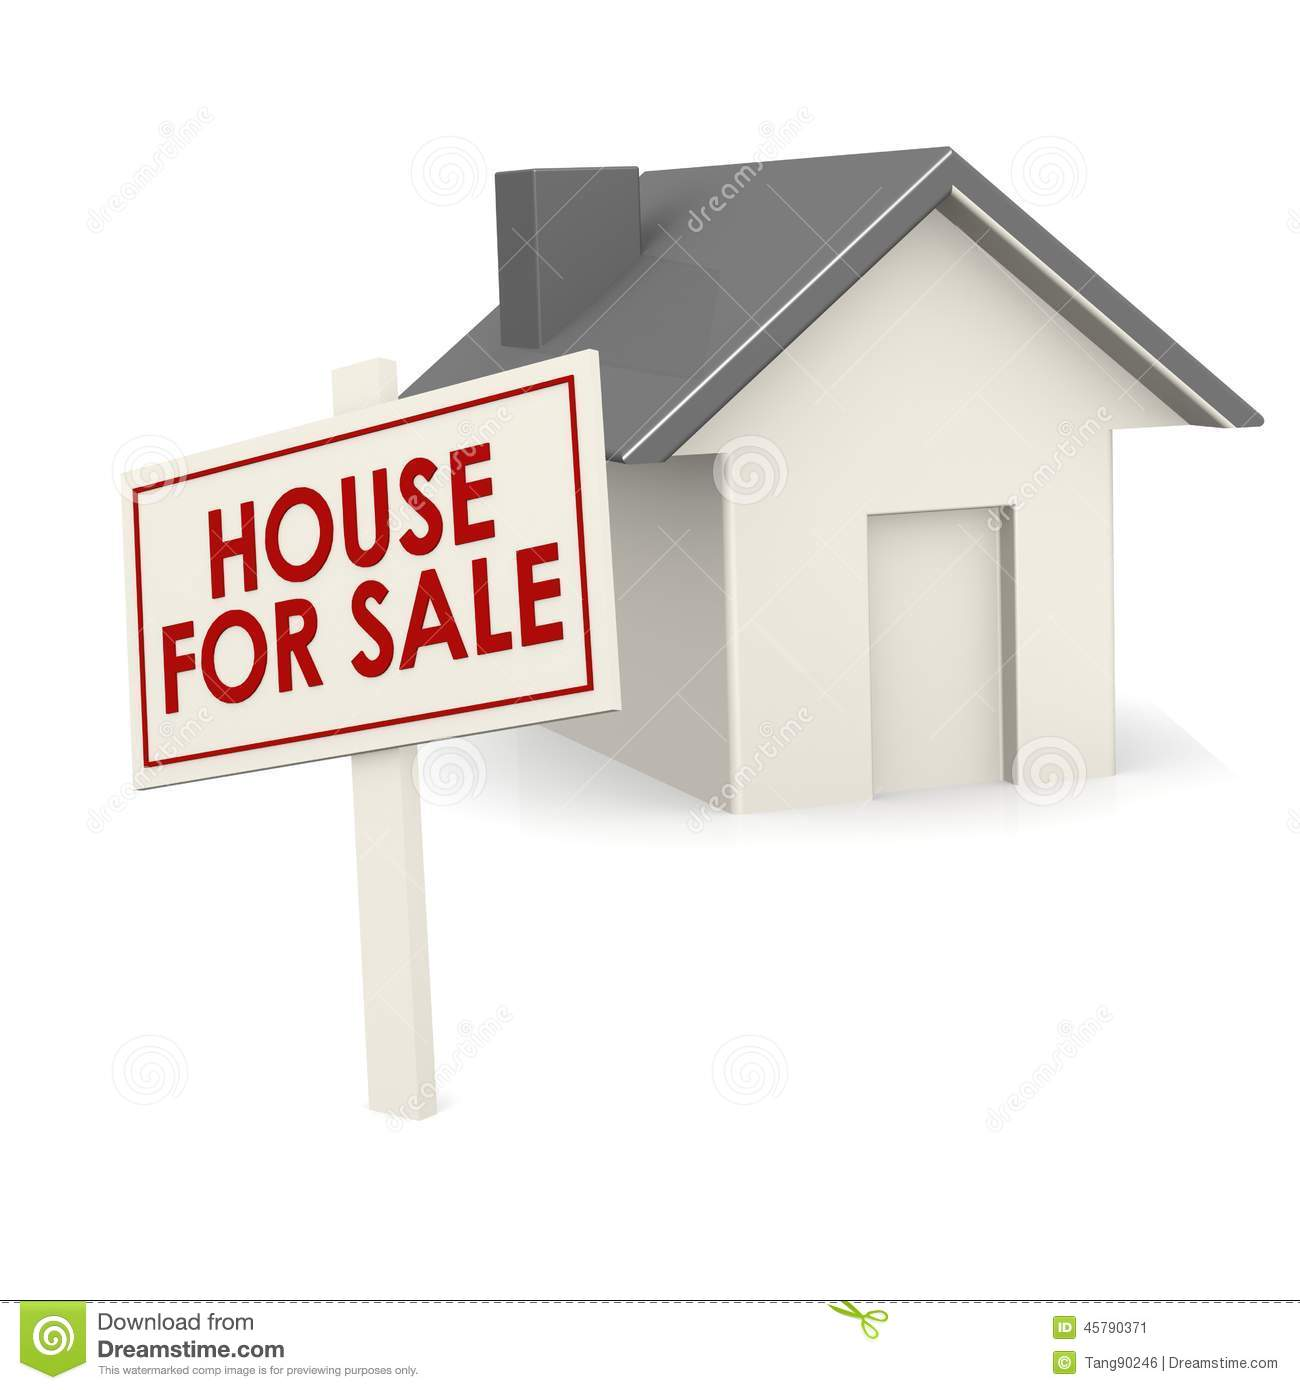 House for sale banner with house stock illustration for Housse for sale